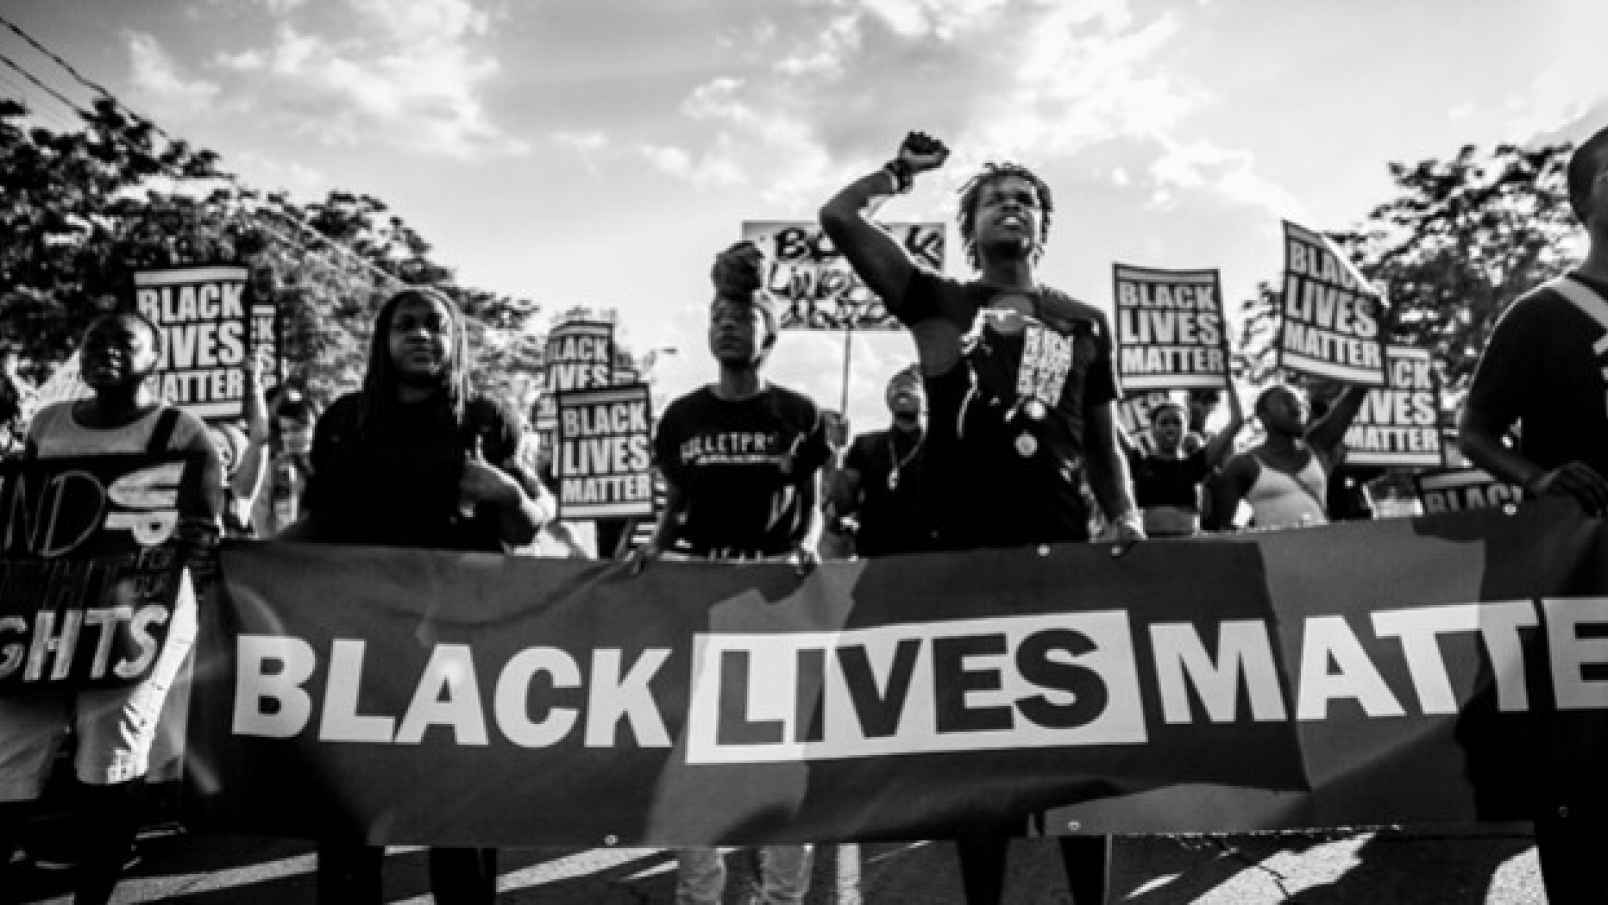 unfair policing of african americans and the black lives matter movement